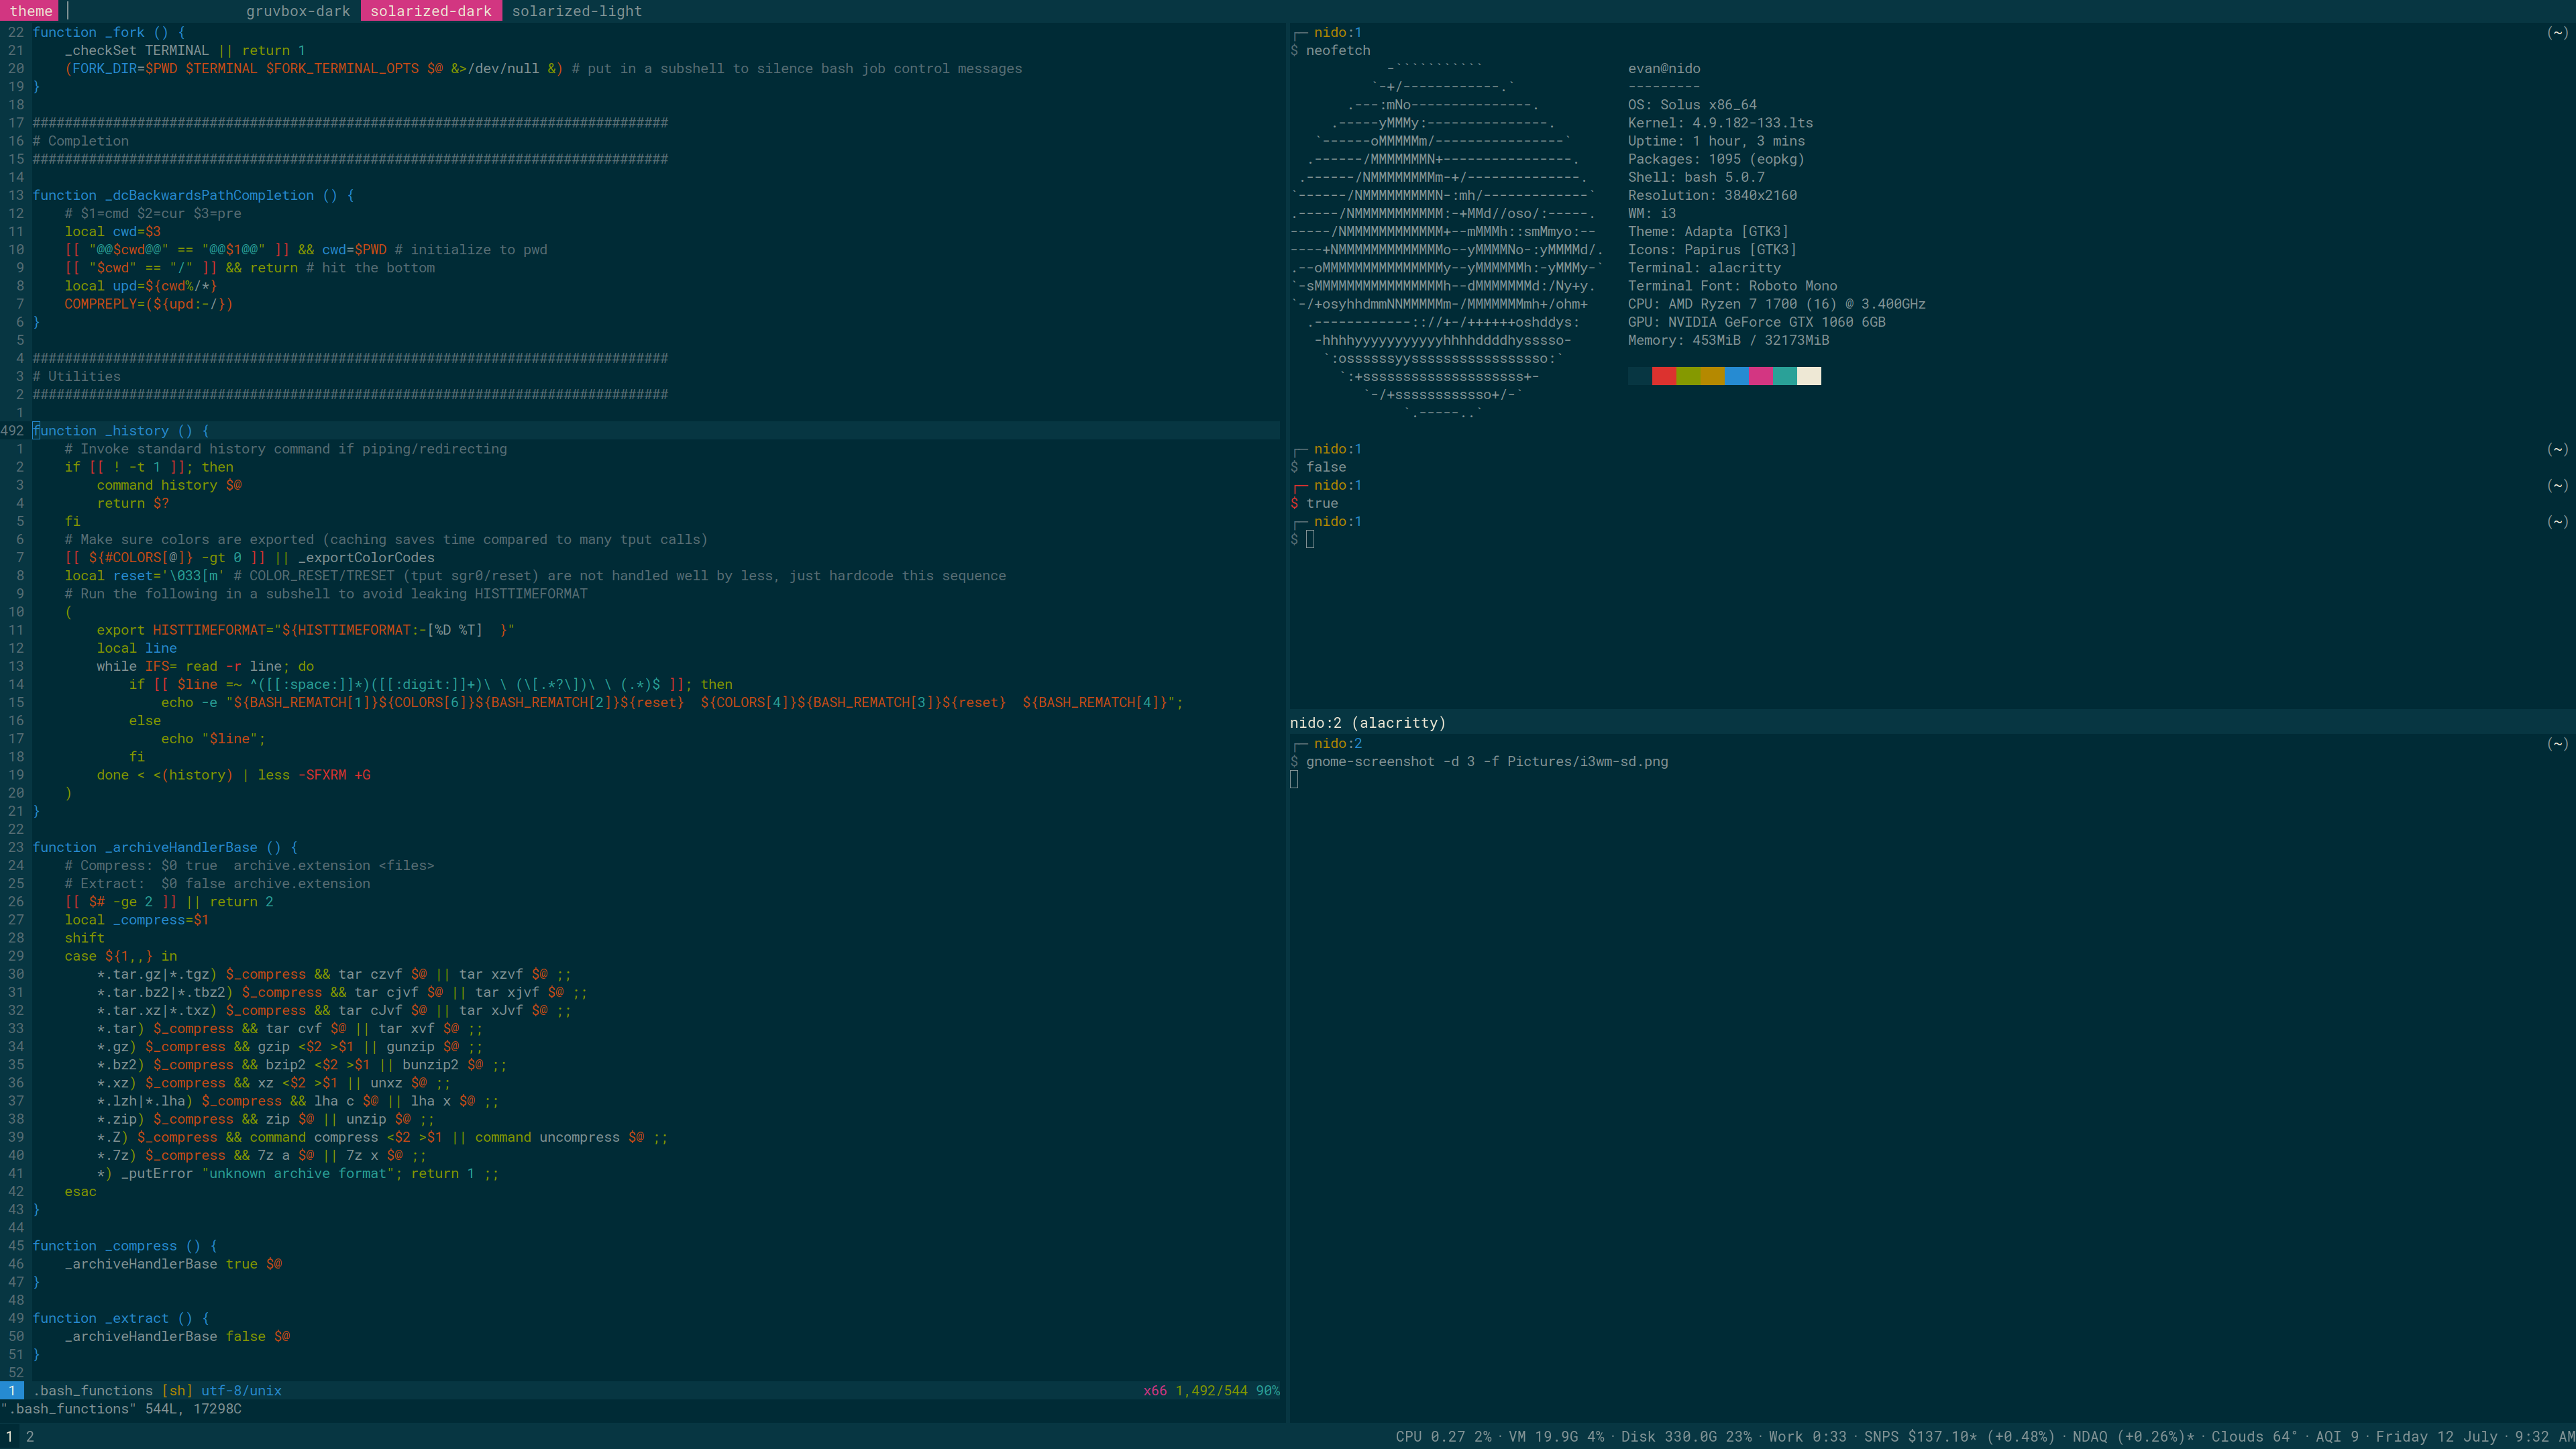 What's your favourite terminal emulator? - Solus Forum